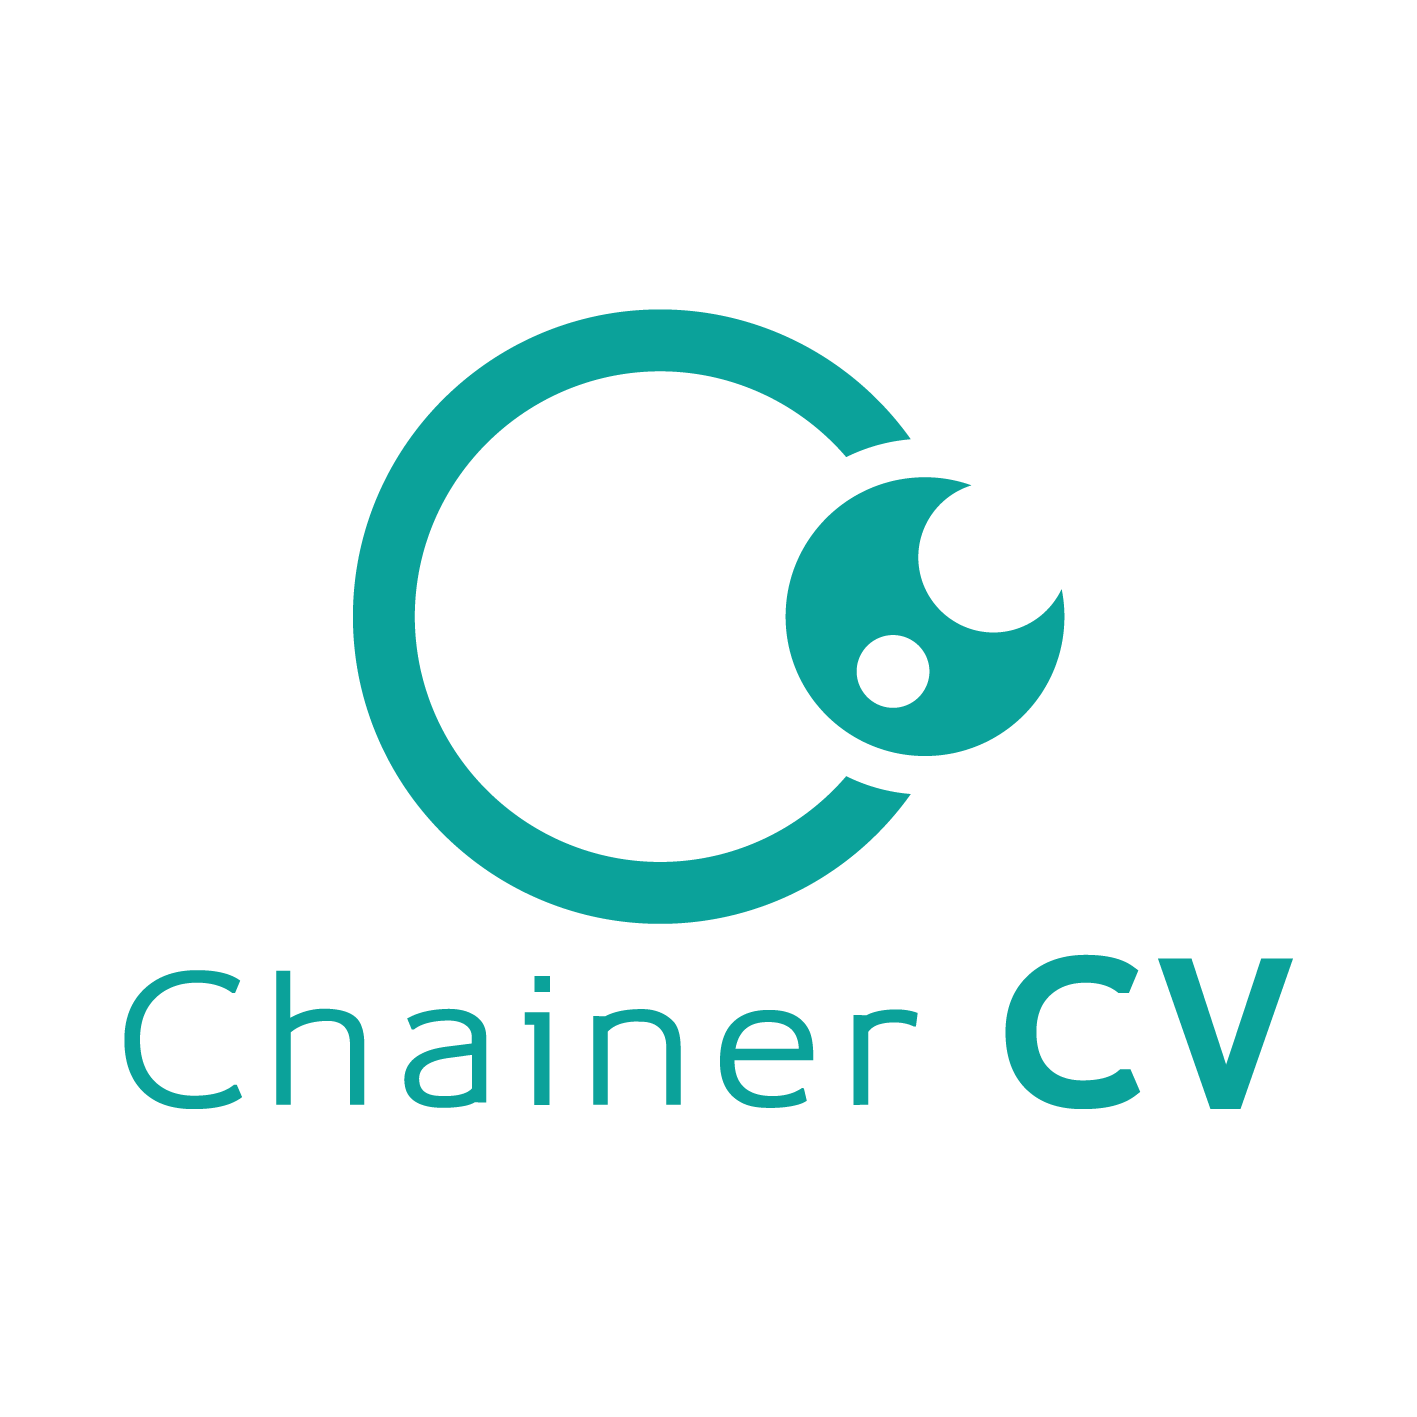 Chainer: A flexible framework for neural networks